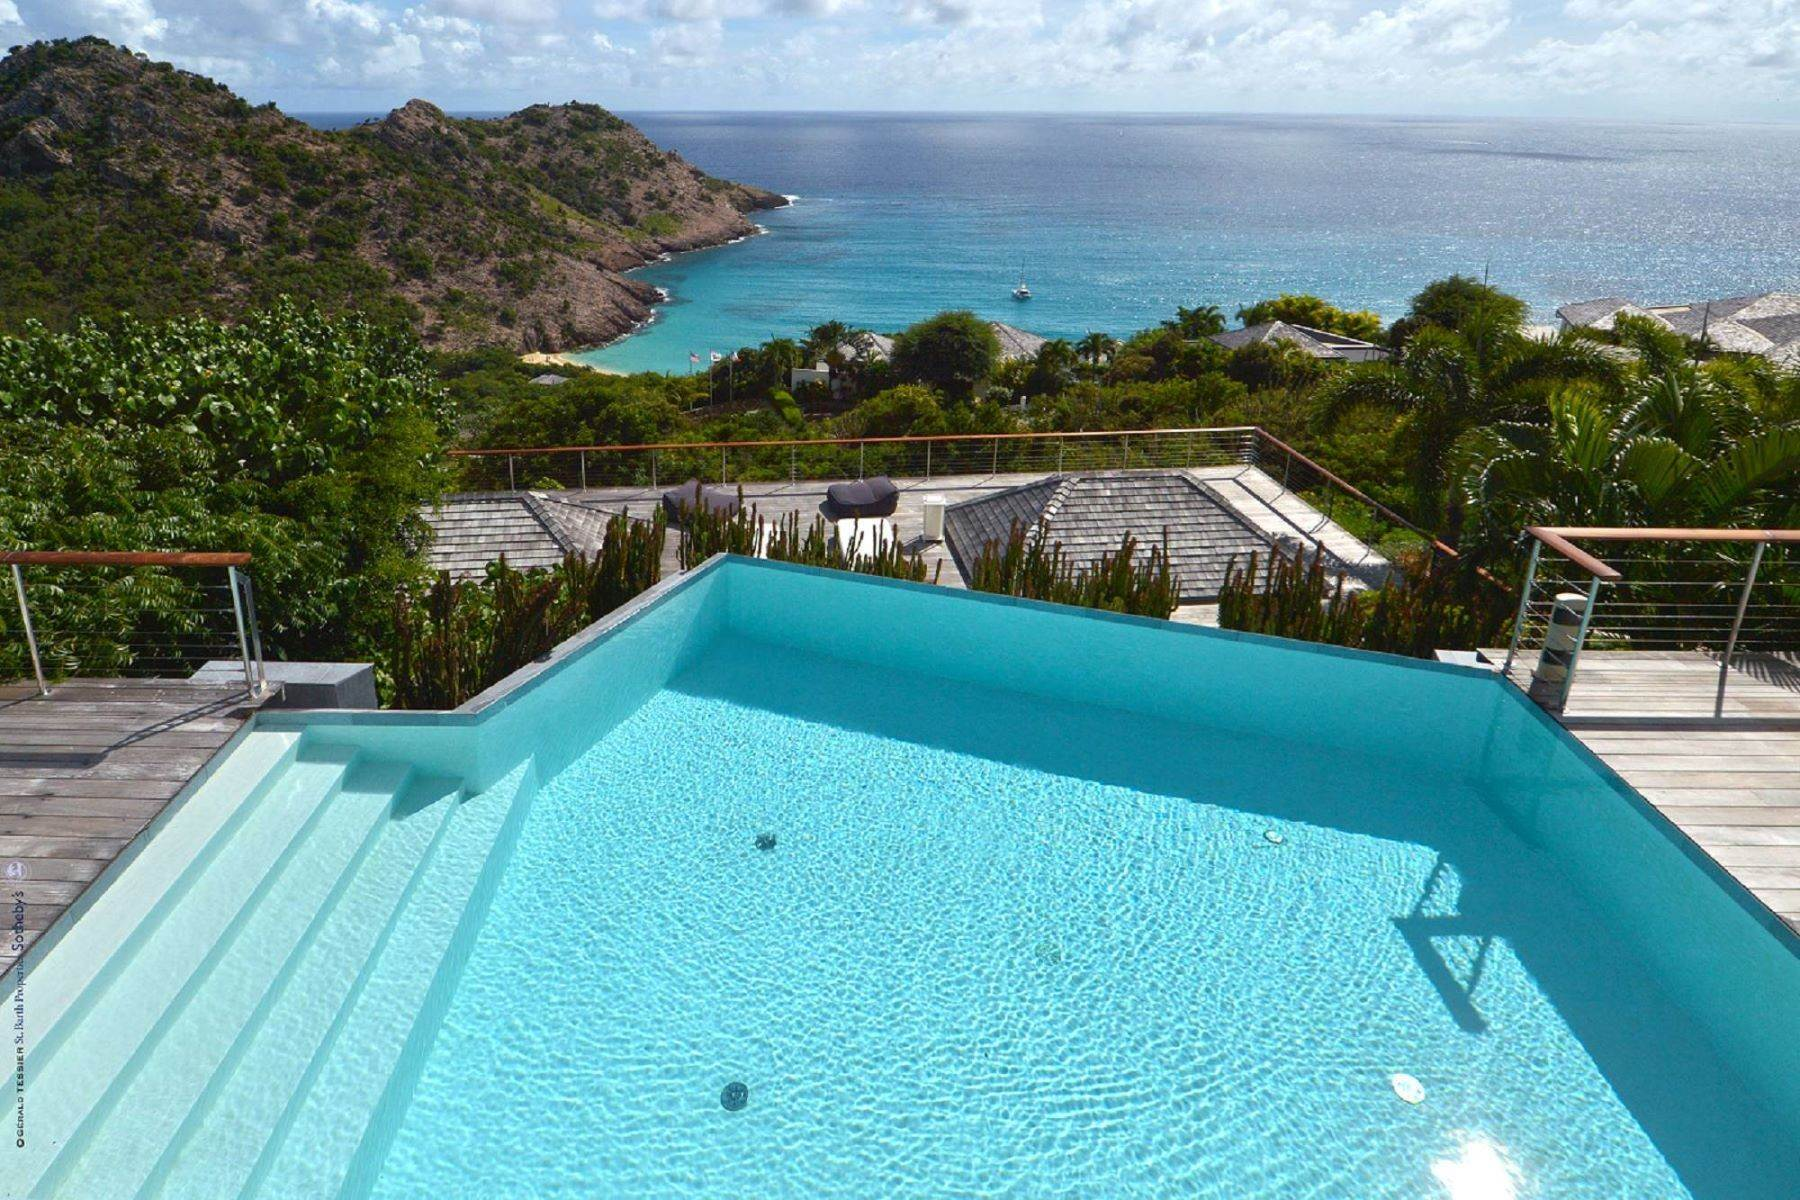 Single Family Homes for Sale at Villa Blue Dragon Other St. Barthelemy, St. Barthelemy